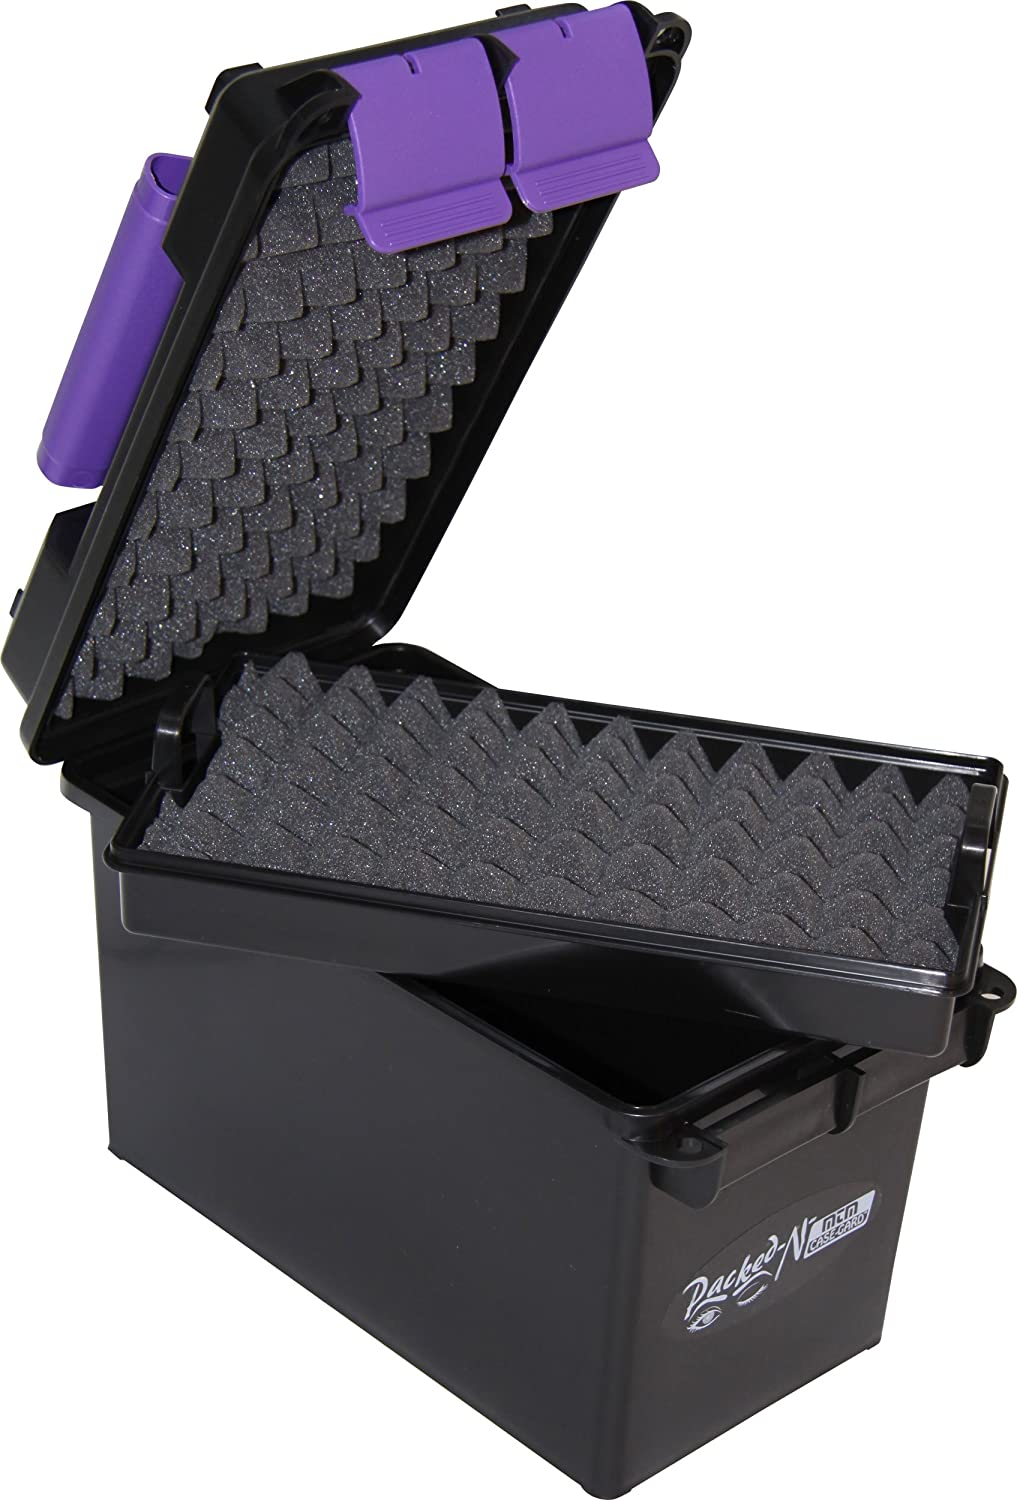 MTM HCC-25 Handgun Pistol Conceal Carry Case, Medium, Purple MTM Molded Products Company